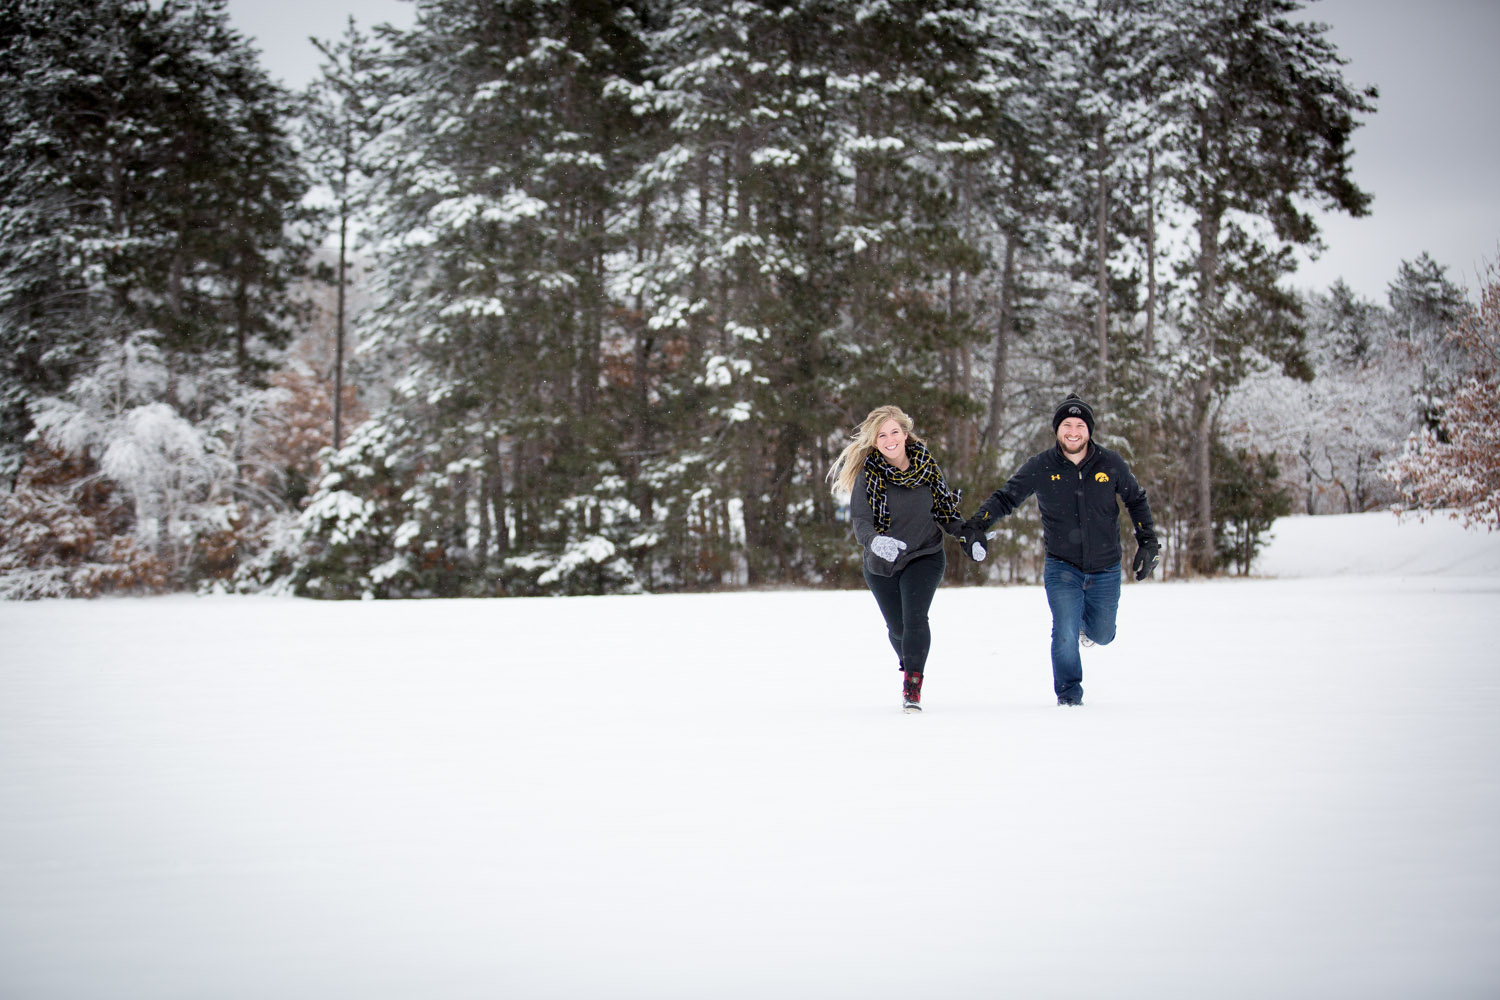 07-bunker-hill-regional-park-winter-wonderland-minnesota-engagement-photographer-snowy-day-snow-field-hawkeye-fans-fun-photo-session-mahonen-photography.jpg